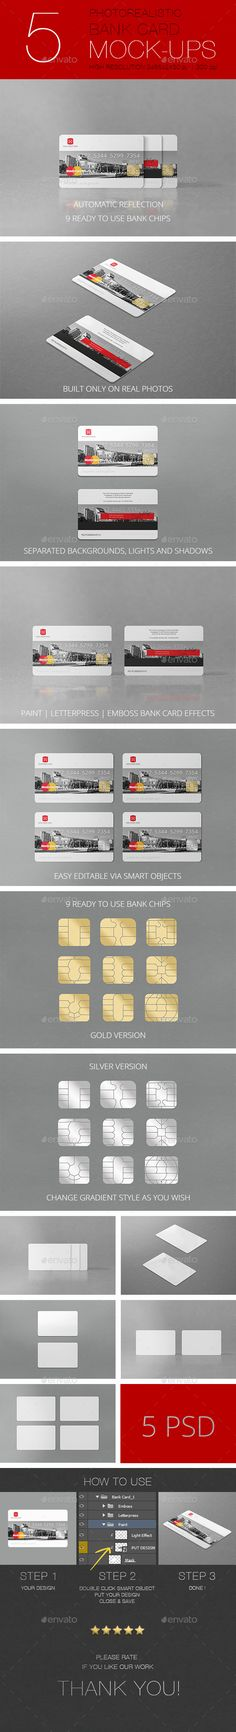 Buy Photorealistic Bank Card Mockup by Clevery on GraphicRiver. Photorealistic Bank Card Mockup is built only on professional photos. You can control light effect on all psd files b. Credit Card Design, Mockup Photoshop, Bank Card, Plate Design, Business Card Logo, Cardio, Behance, Free, Graphic Design